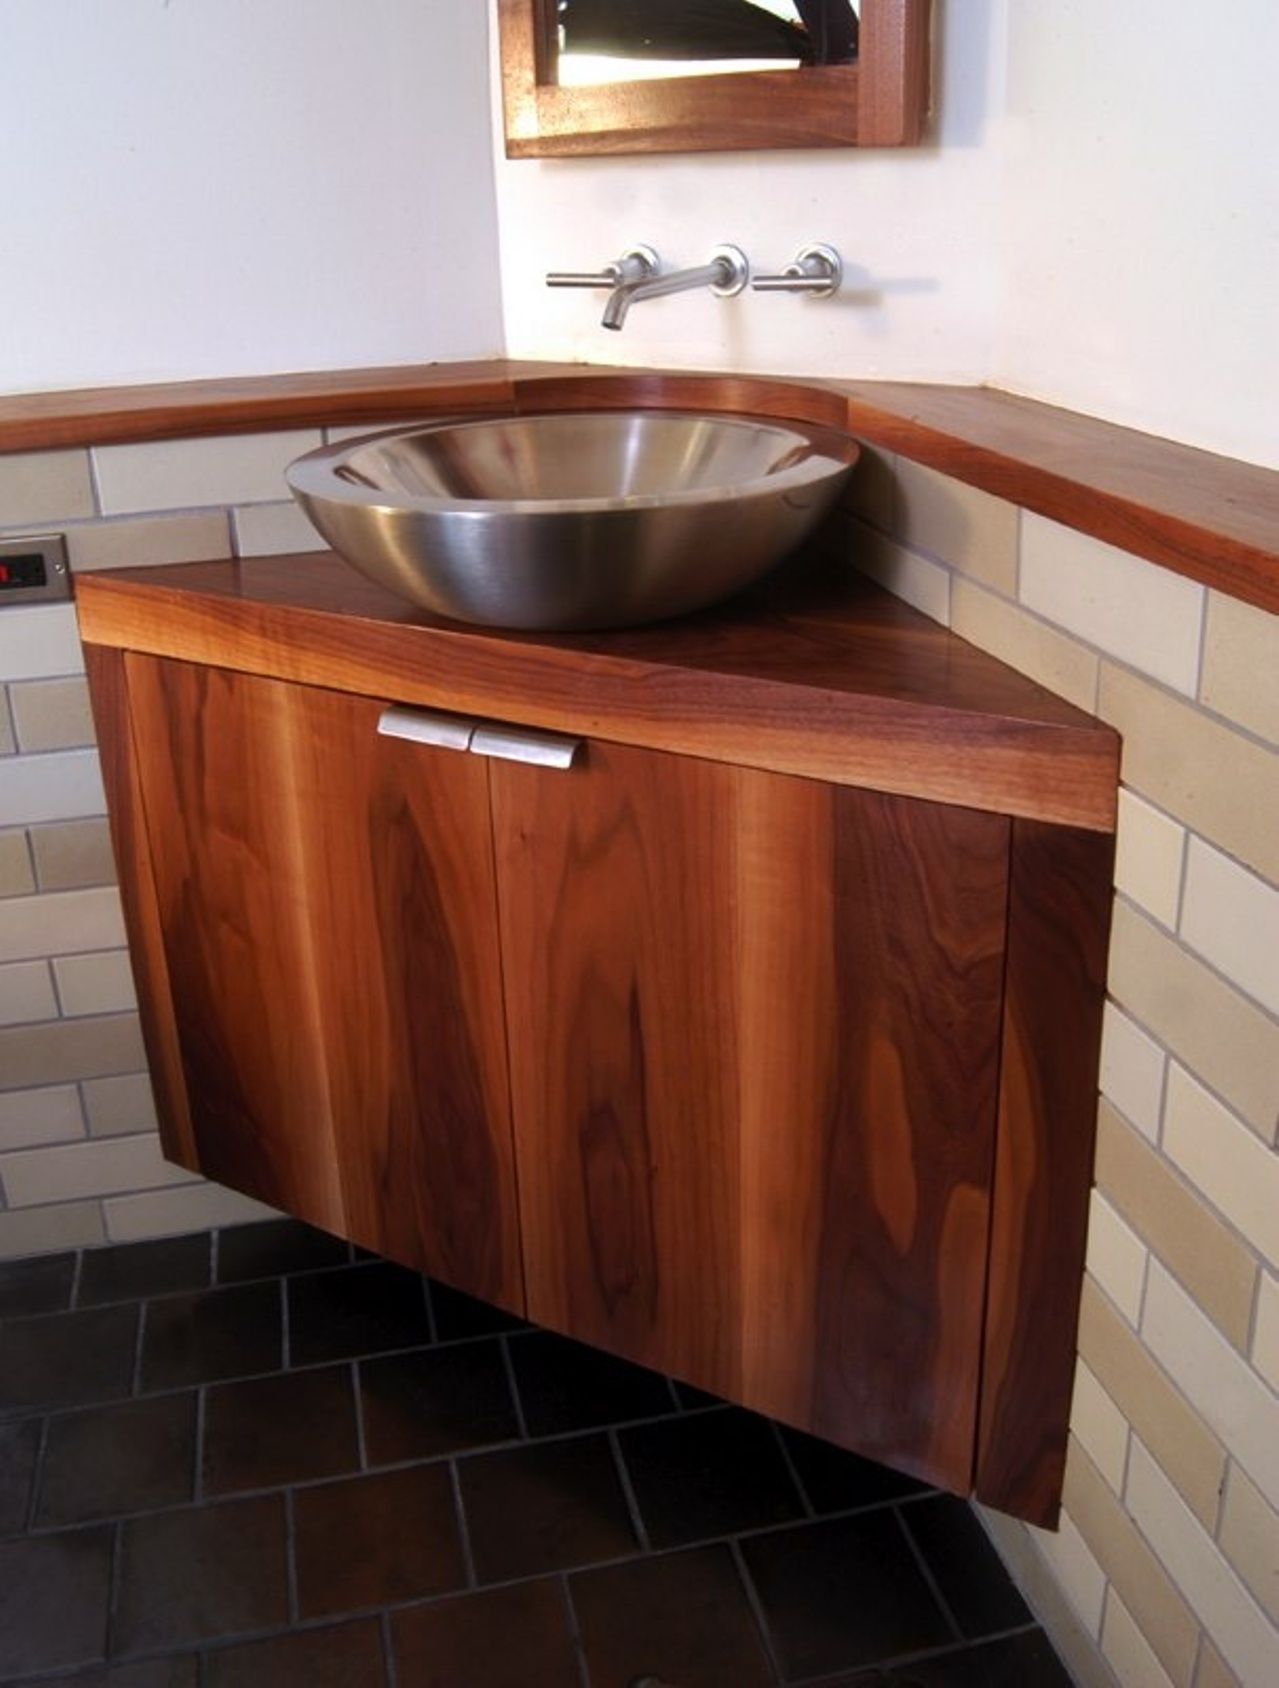 Toilet on pinterest corner bathroom sinks corner sink bathroom - These 10 Stylish Corner Sinks Are Your Small Bathroom Solution Corner Sinks Are Small Bath Space Savers